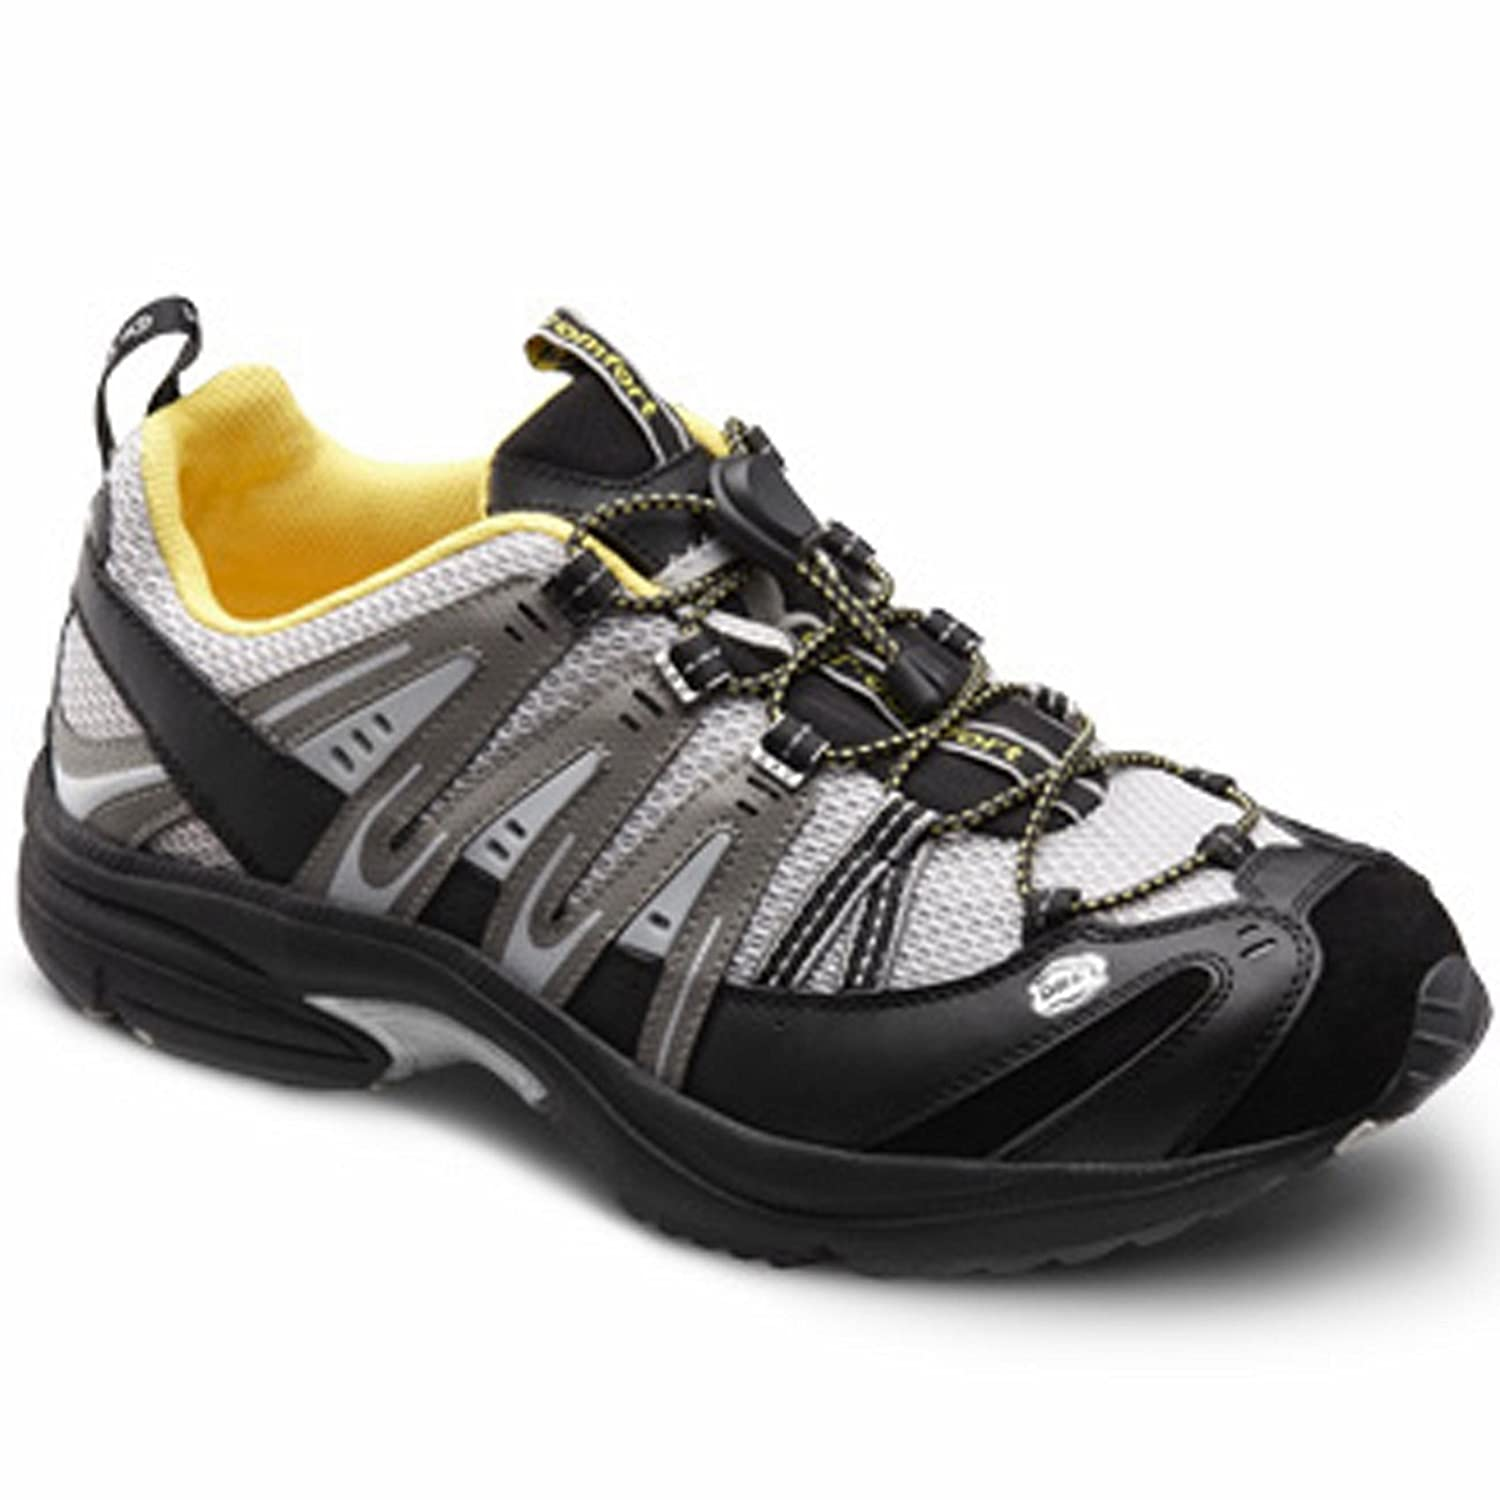 dr diabetic casual s comforts mens comforter black beauty best velco stretch brian lycra comfort shoes sale men shoe